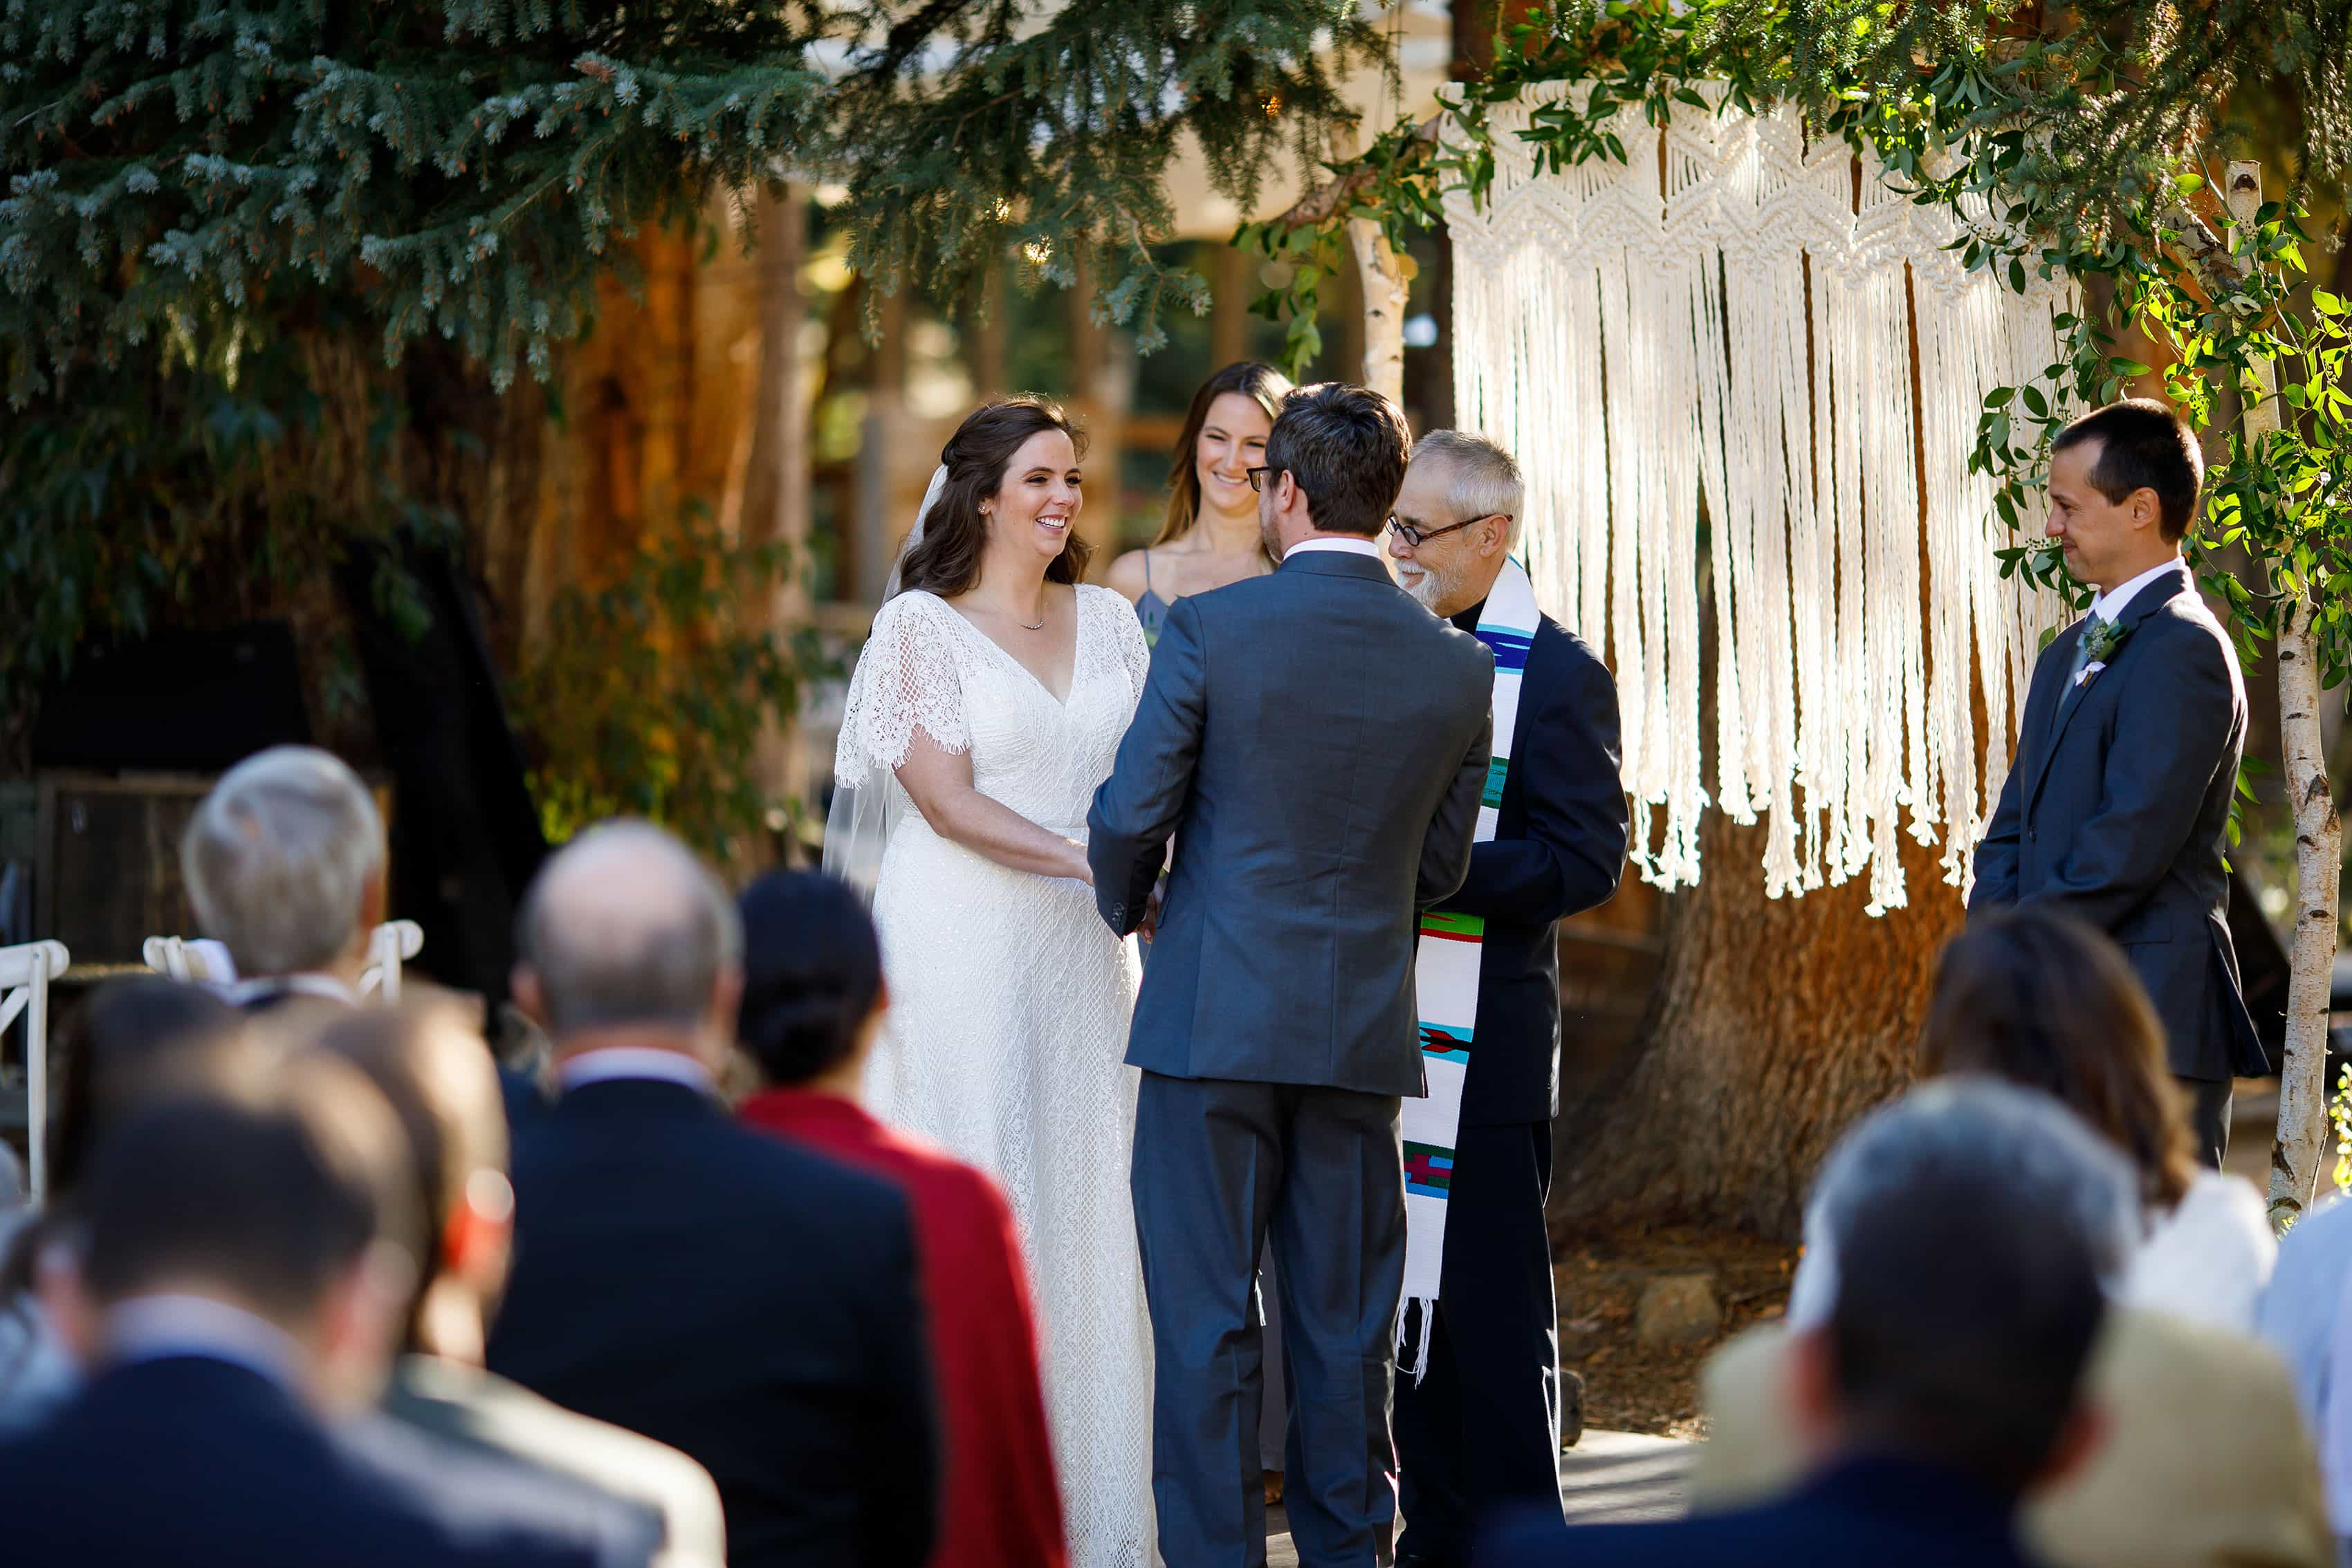 Kate smiles during the wedding ceremony in Idaho Springs